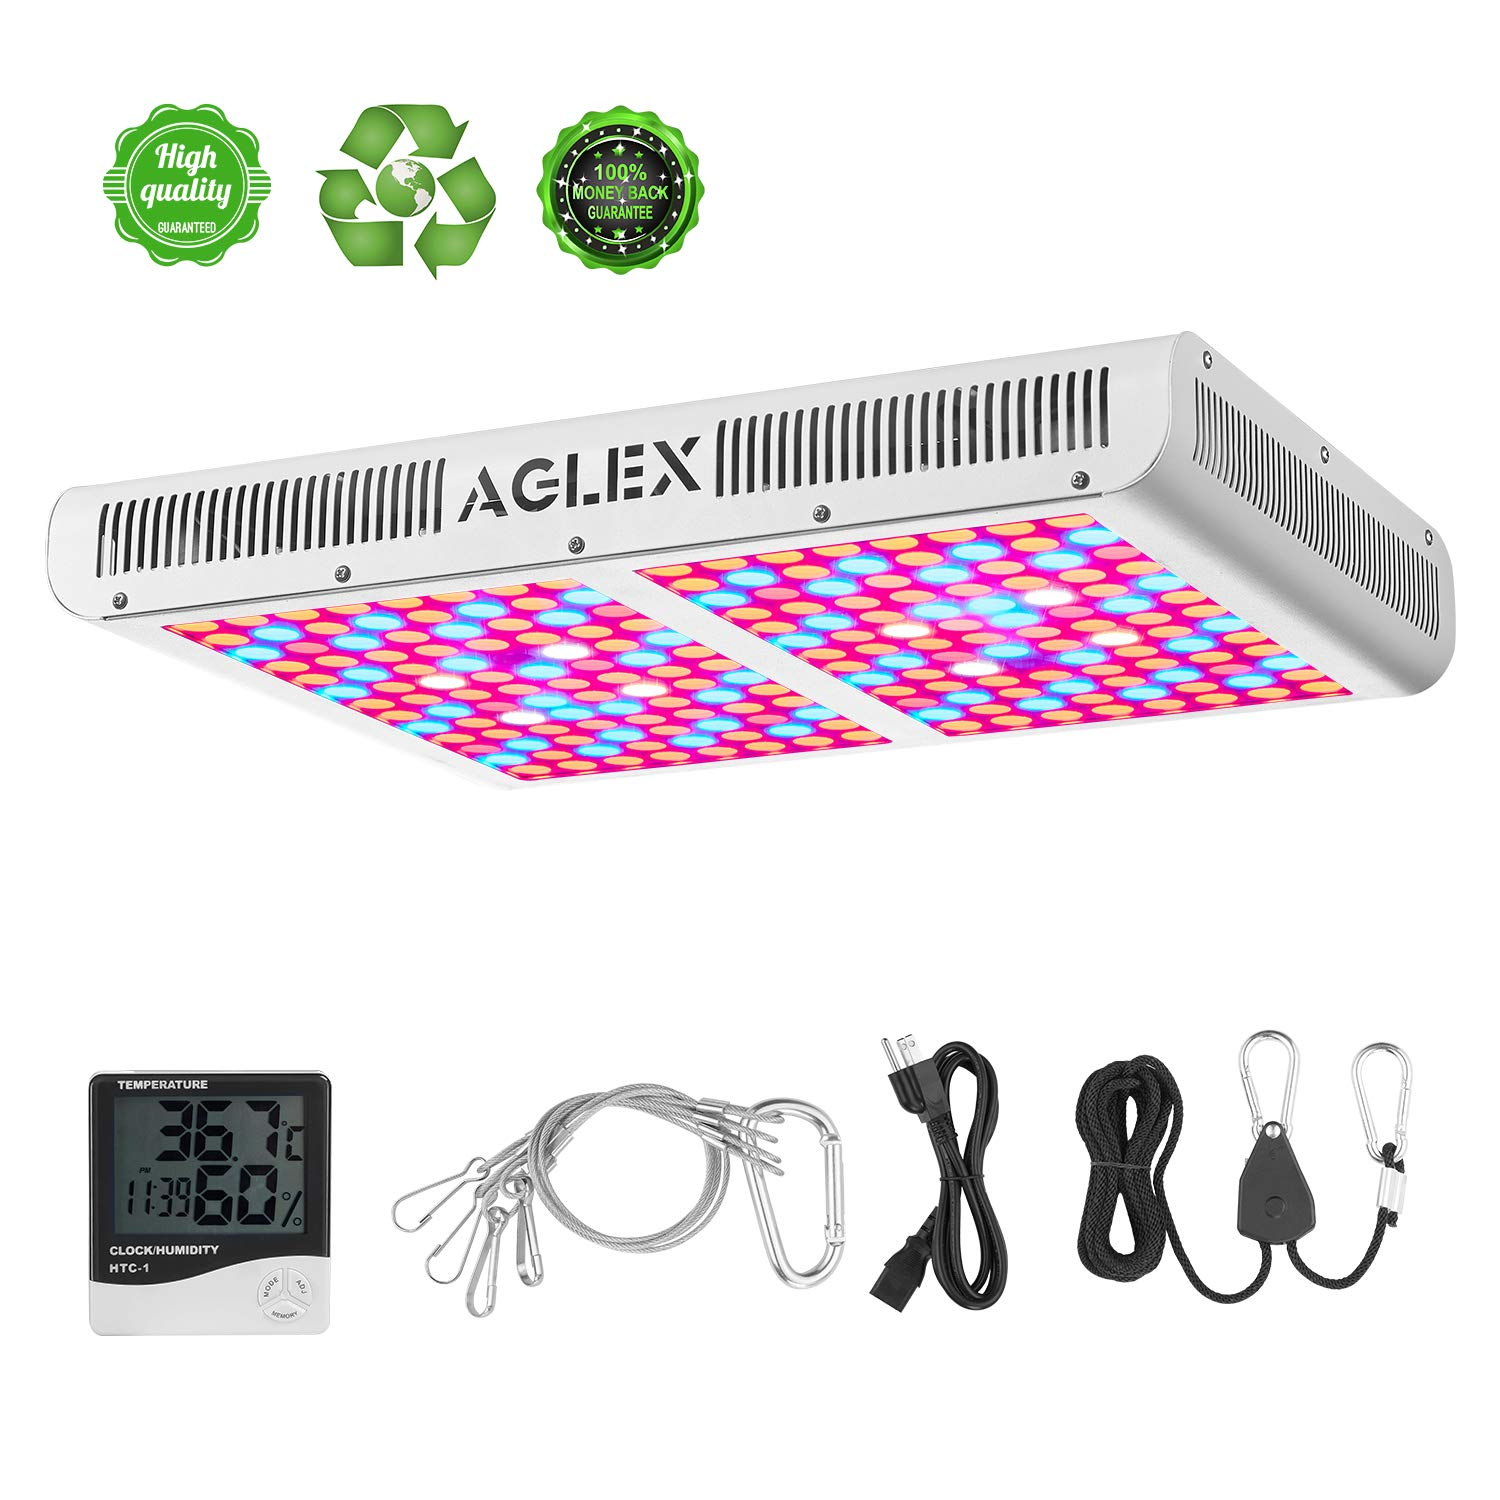 LED Plant Grow Light 2000W - Dual Switch Full Spectrum Reflector Series Growing Lamp with Daisy Chained Design for Hydroponic Greenhouse Indoor Plants Veg and Flower, White (Dual-Chip 10W LEDs) by AGLEX